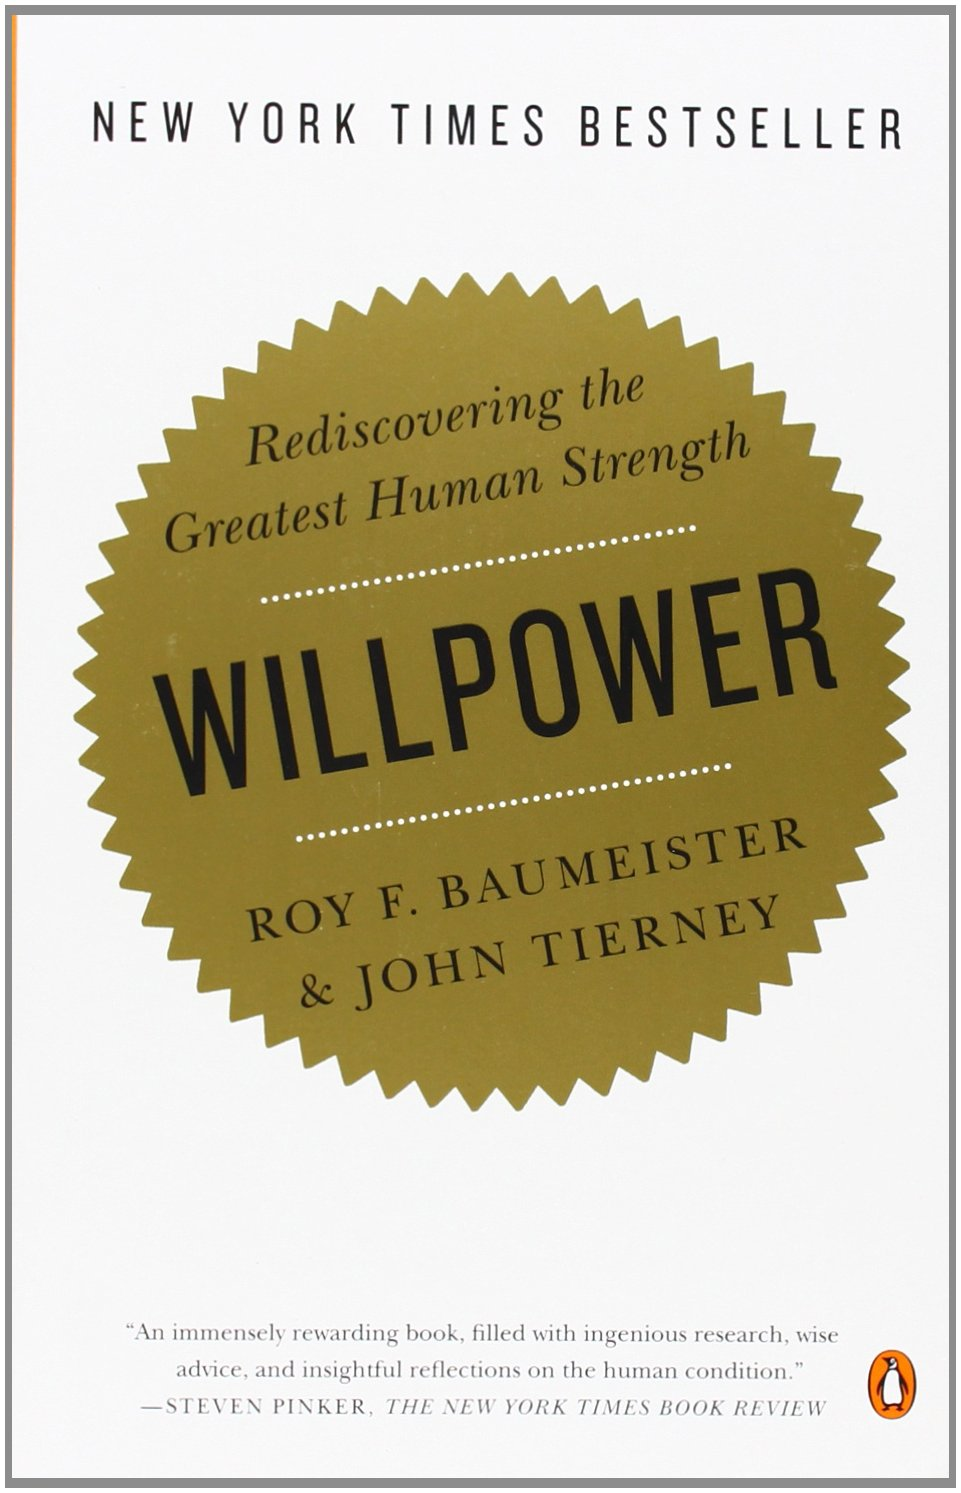 https://www.getflashnotes.com/wp-content/uploads/2015/05/willpower-book-cover.jpg